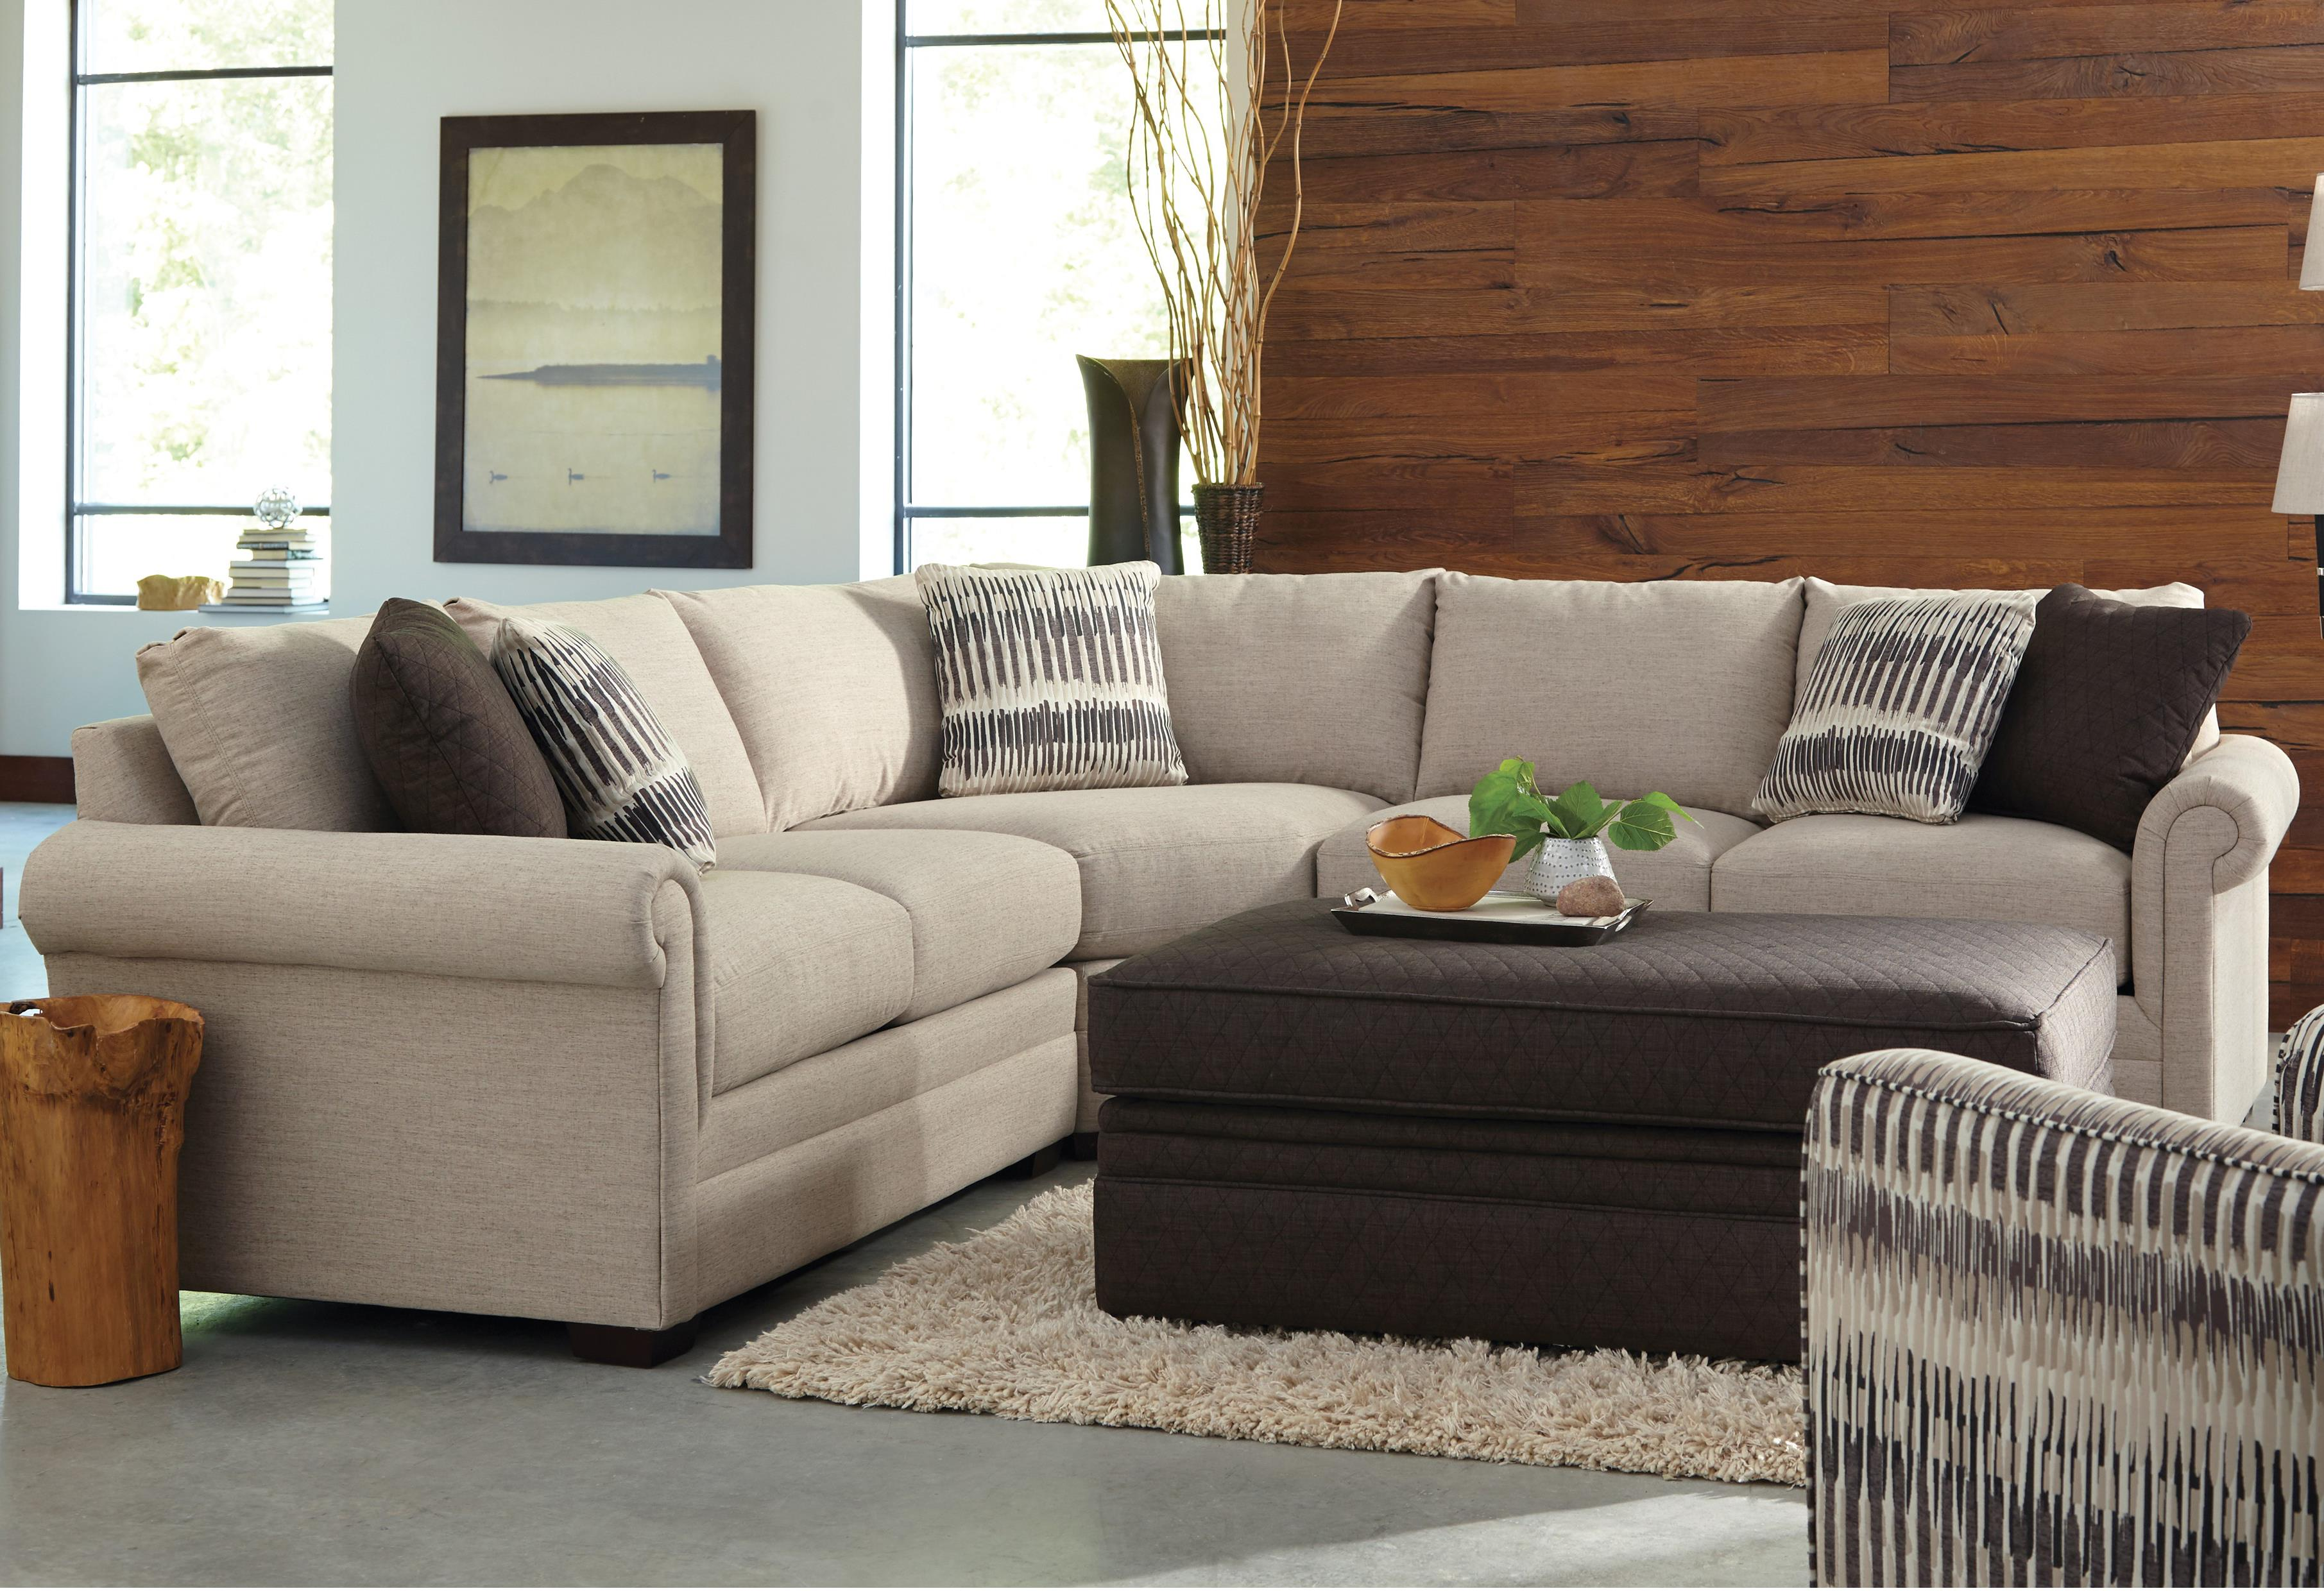 U003cbu003eCustomizableu003c/bu003e 3 Piece Sectional ...